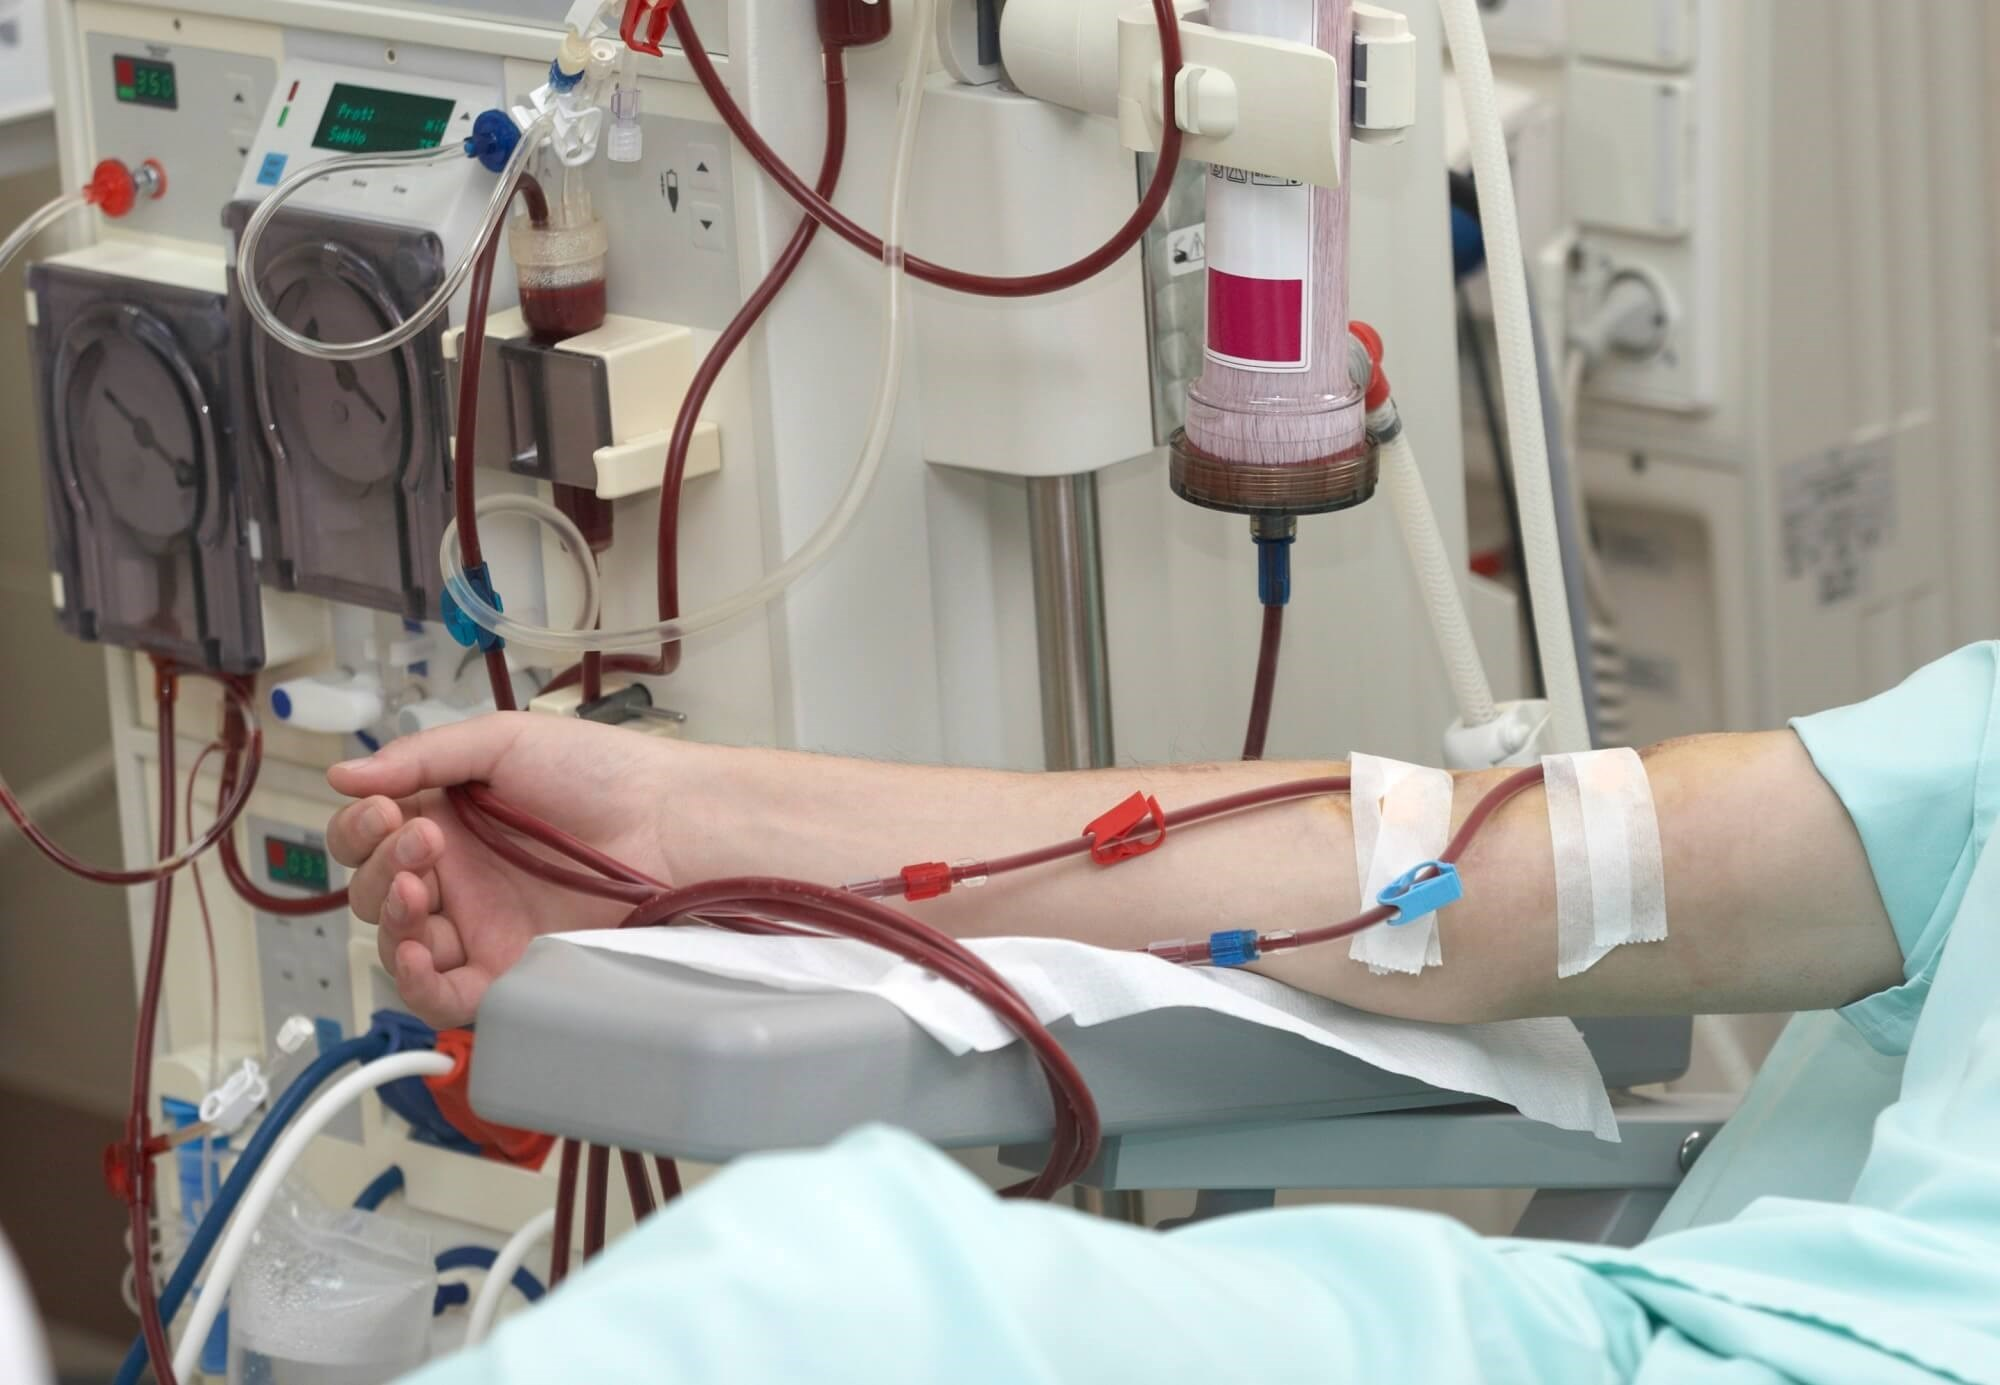 High Frequency of Headaches Following Dialysis Associated With BUN and Blood Pressure